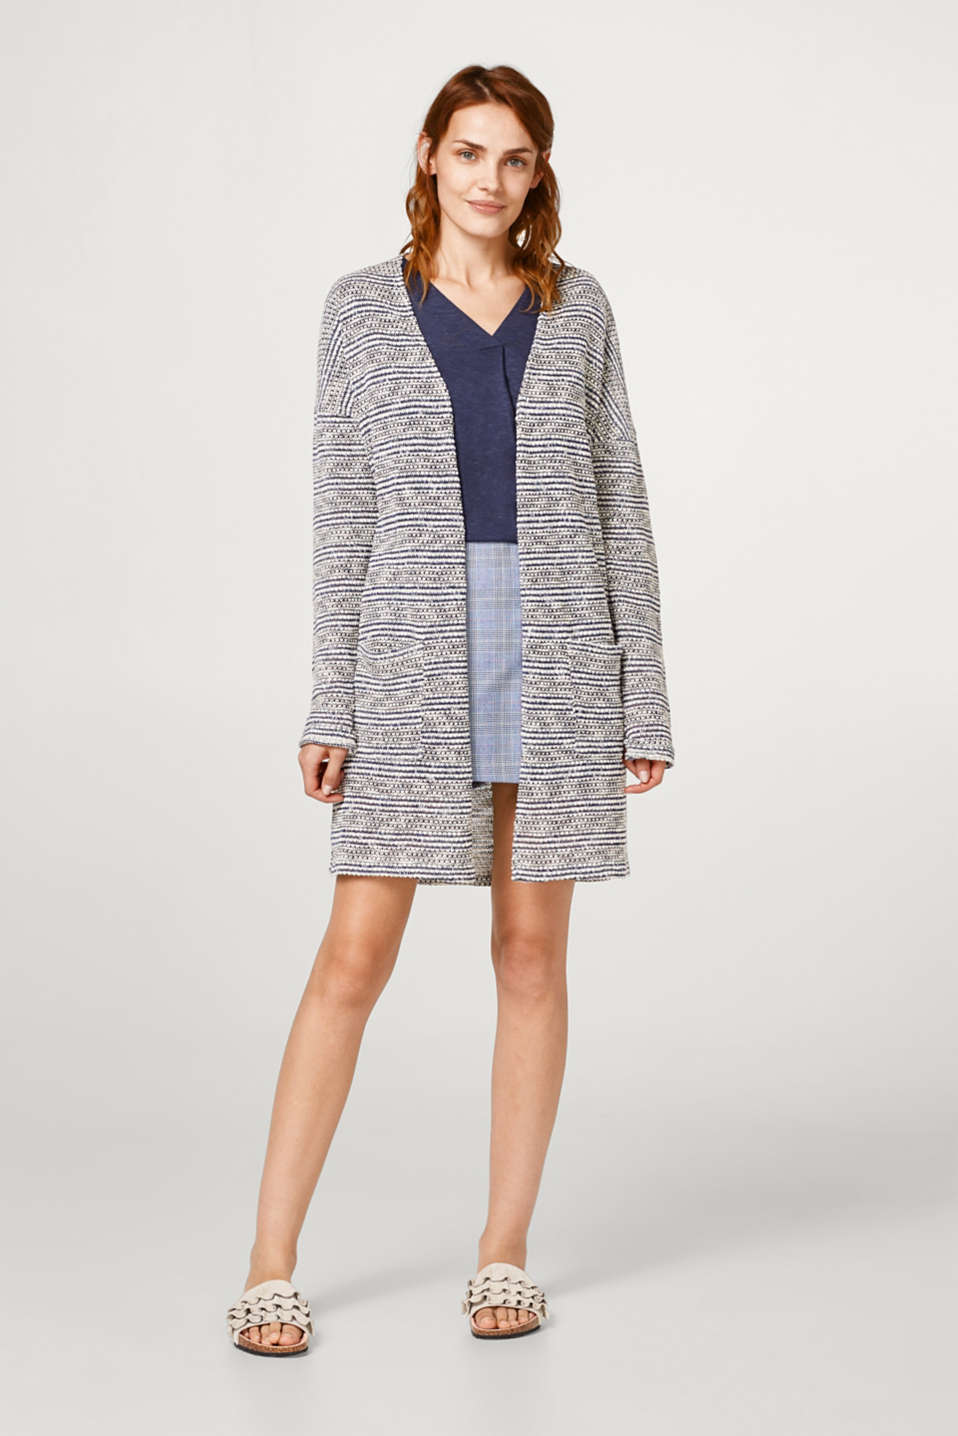 Long cardigan with a textured pattern